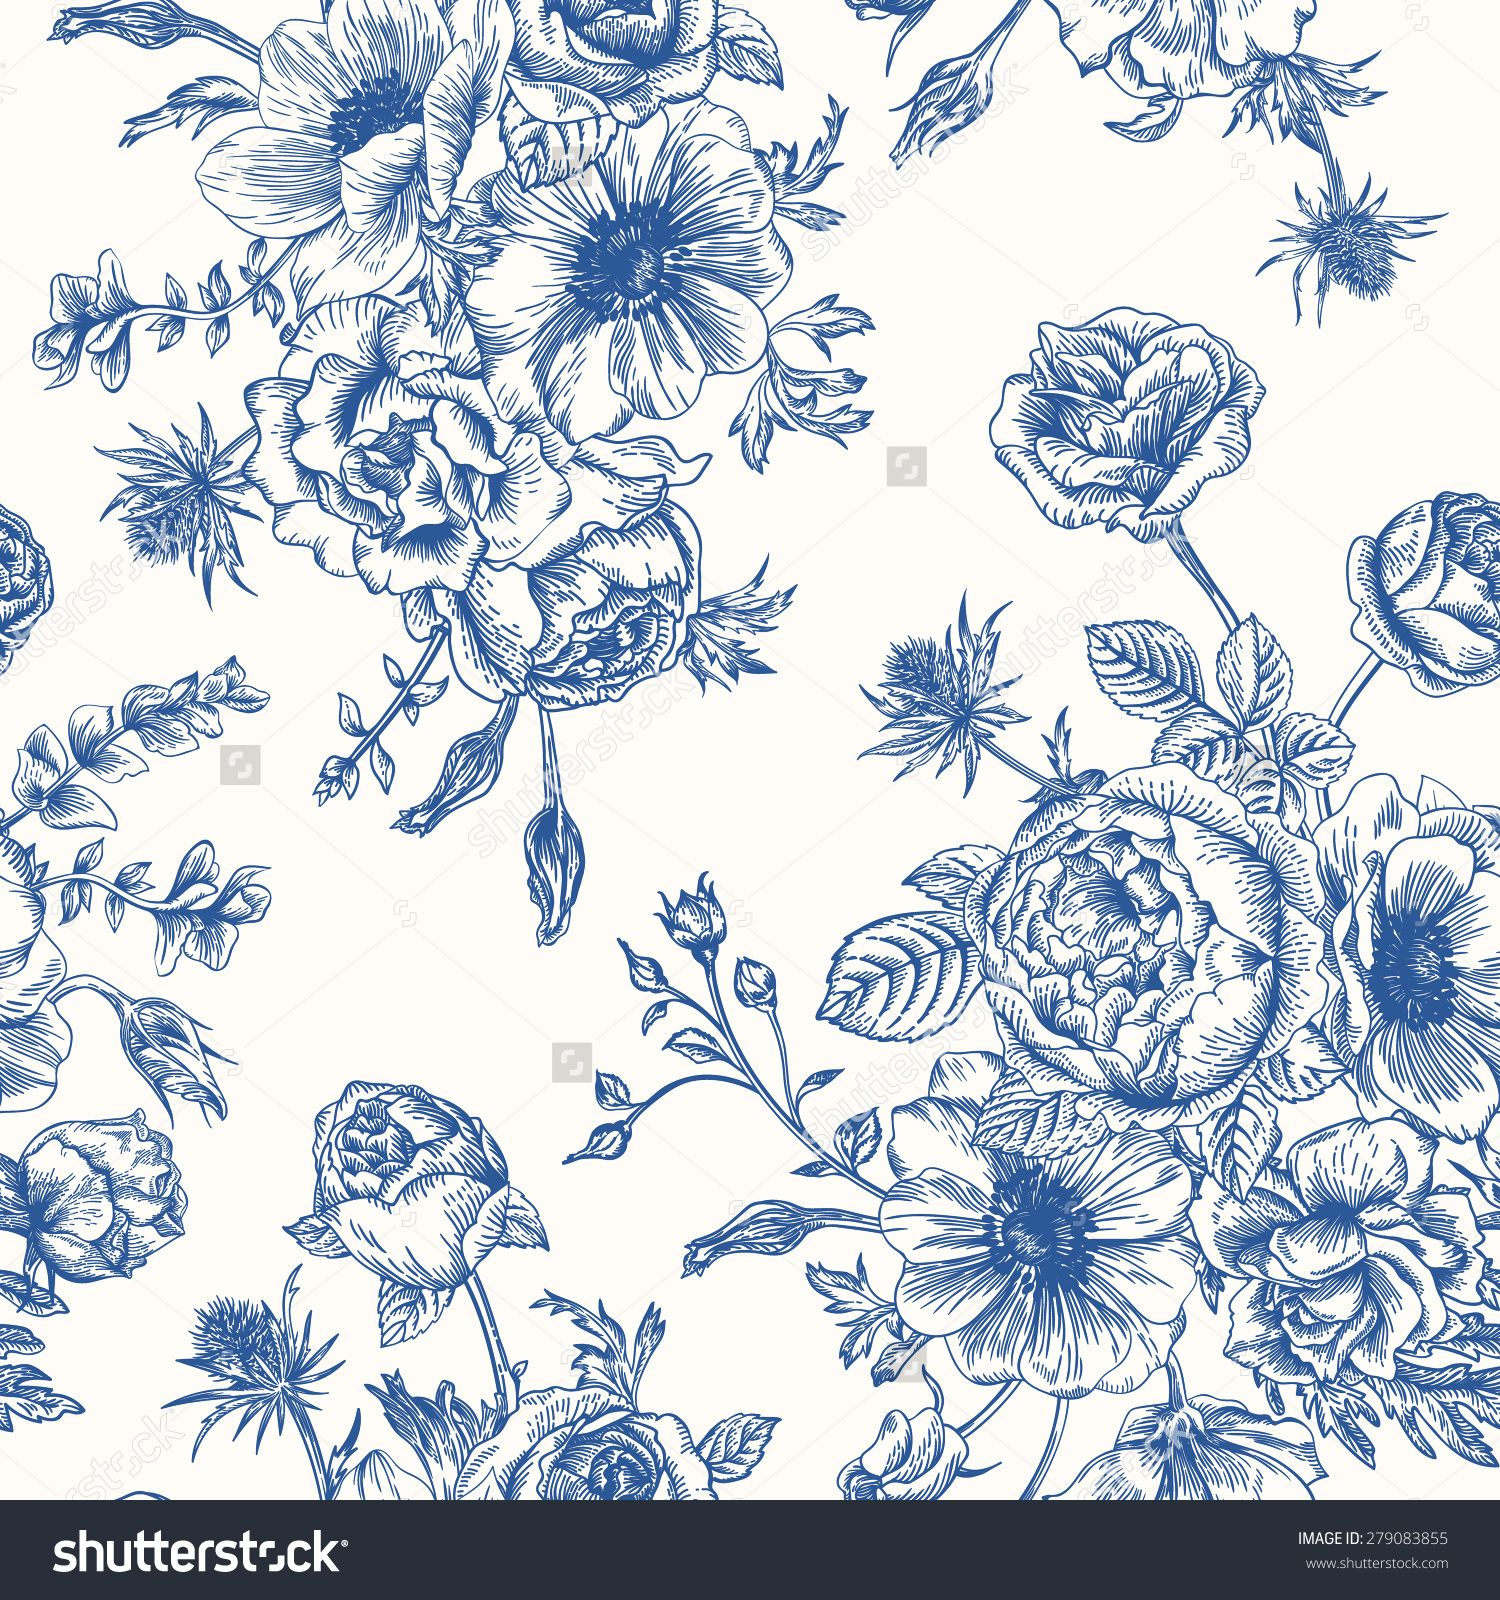 Seamless Floral Pattern With Bouquet Of Blue Flowers On A White